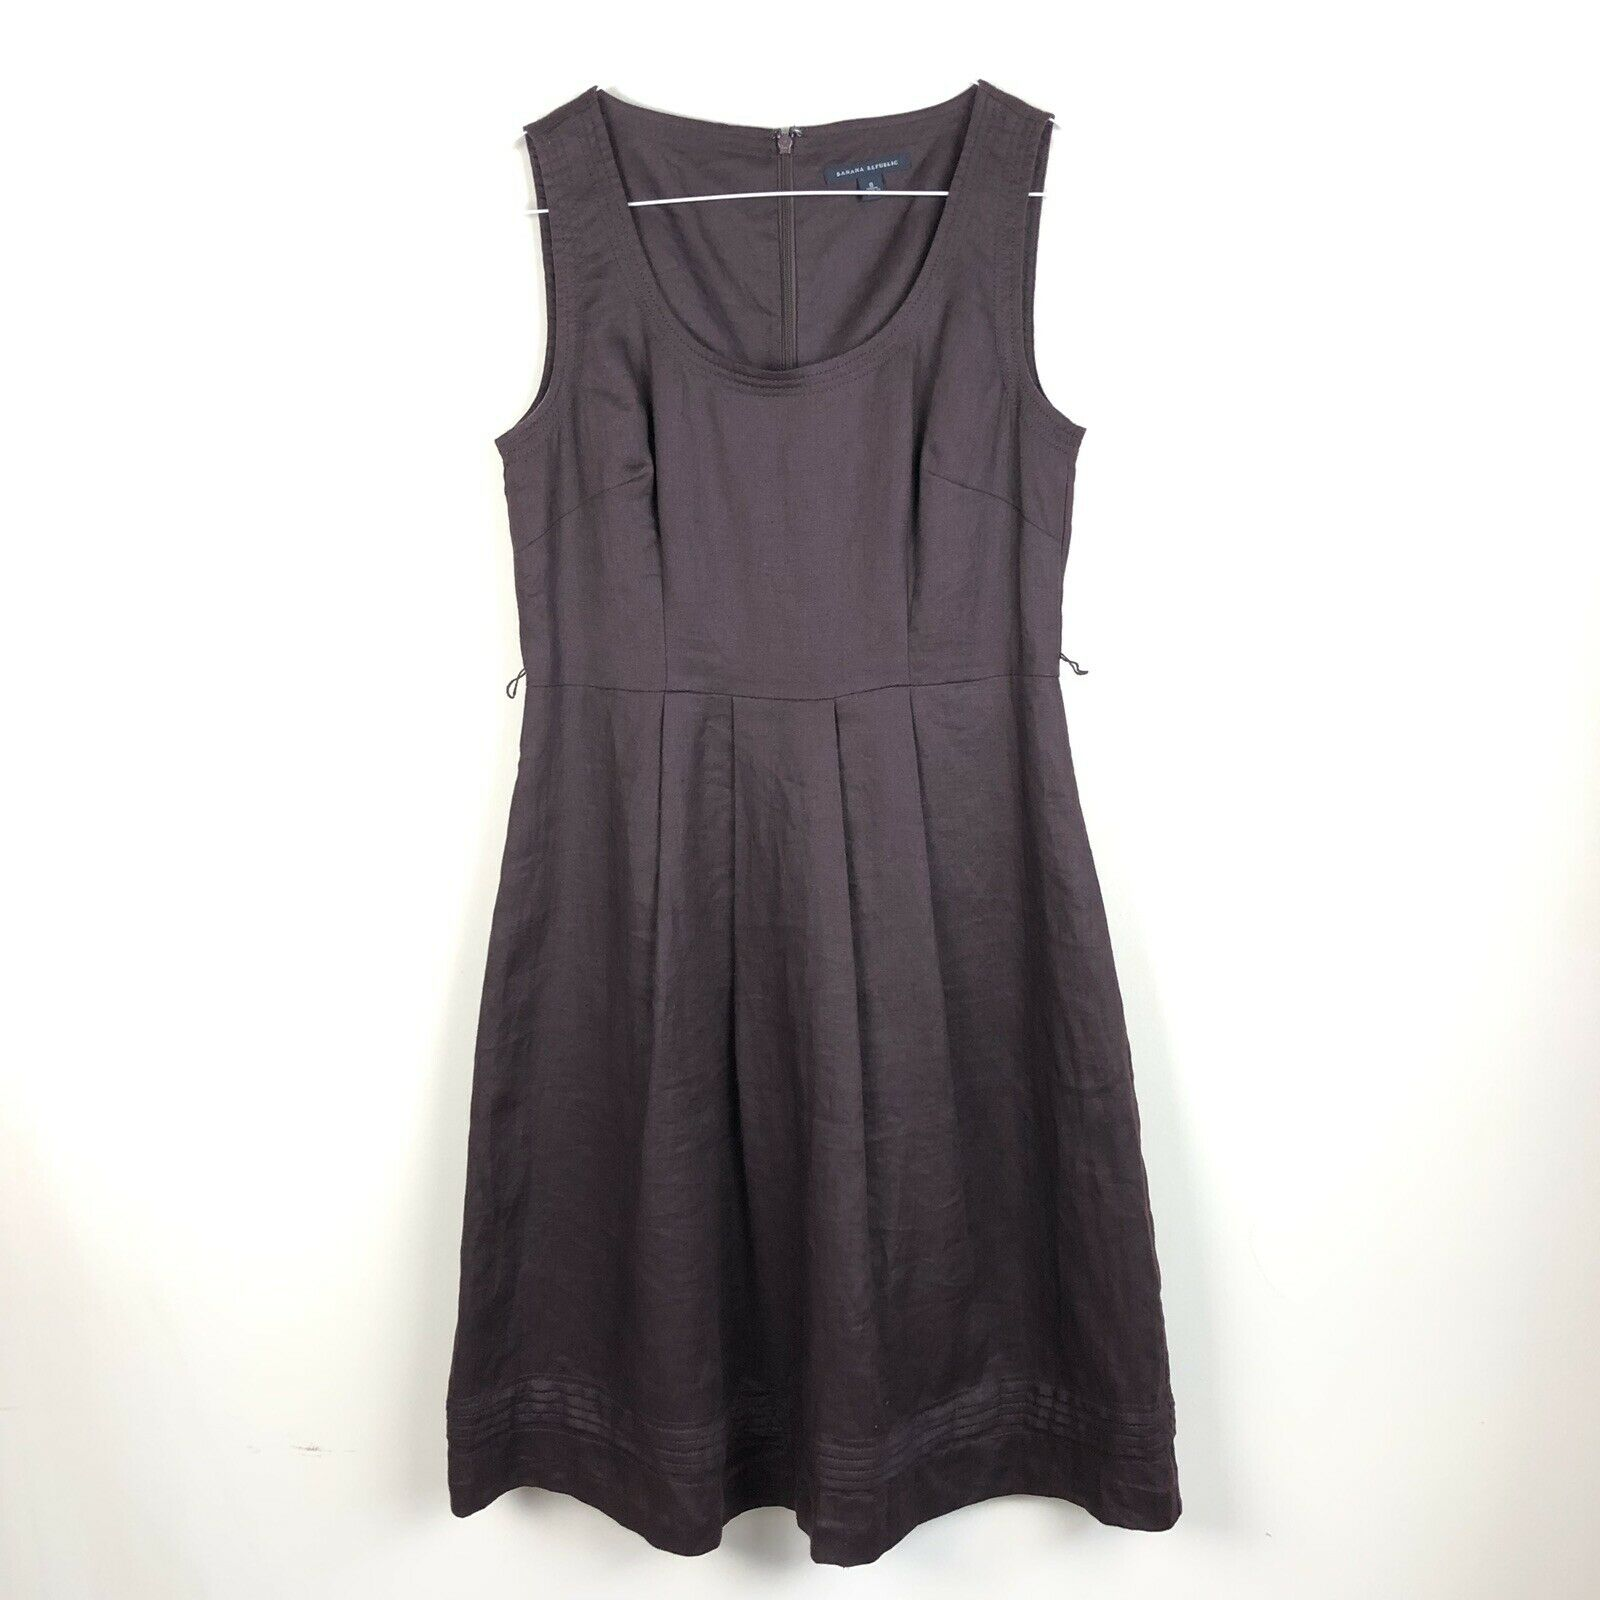 Banana Republic 6 Linen Dress Fit & Flare Brown Lined Career